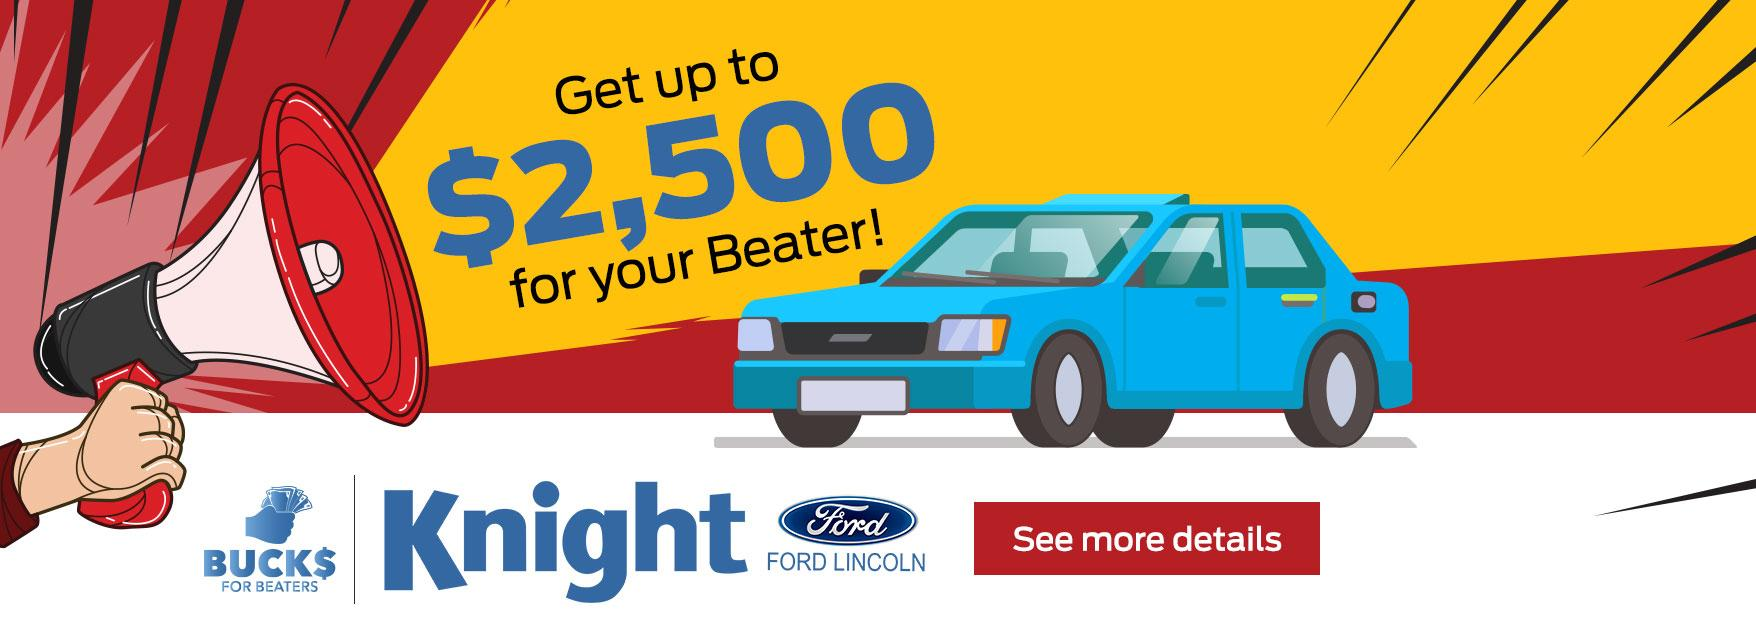 Bucks for beaters Knight Ford Lincoln